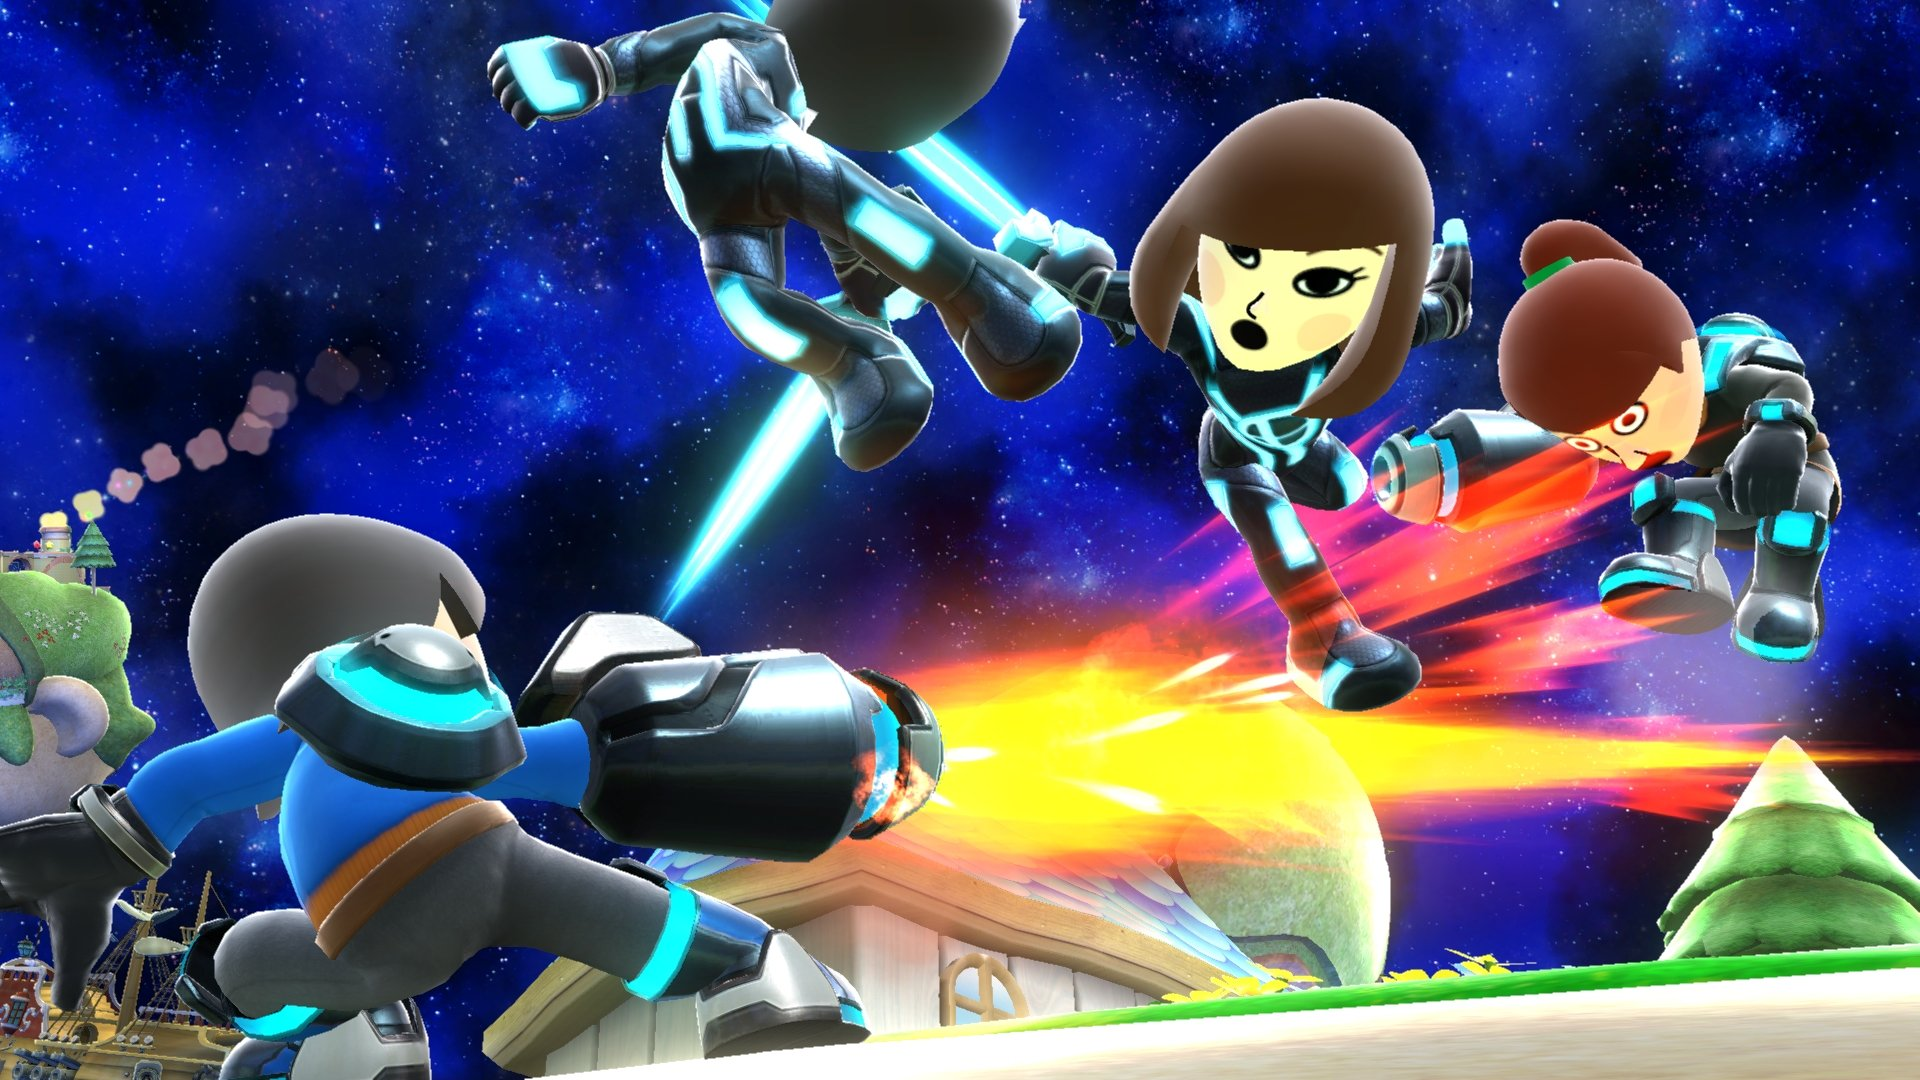 super smash bros matchmaking This super smash bros game will be releasing for both the wii u and the 3ds, and includes all new characters such as megaman, villager and the wii fit trainer.